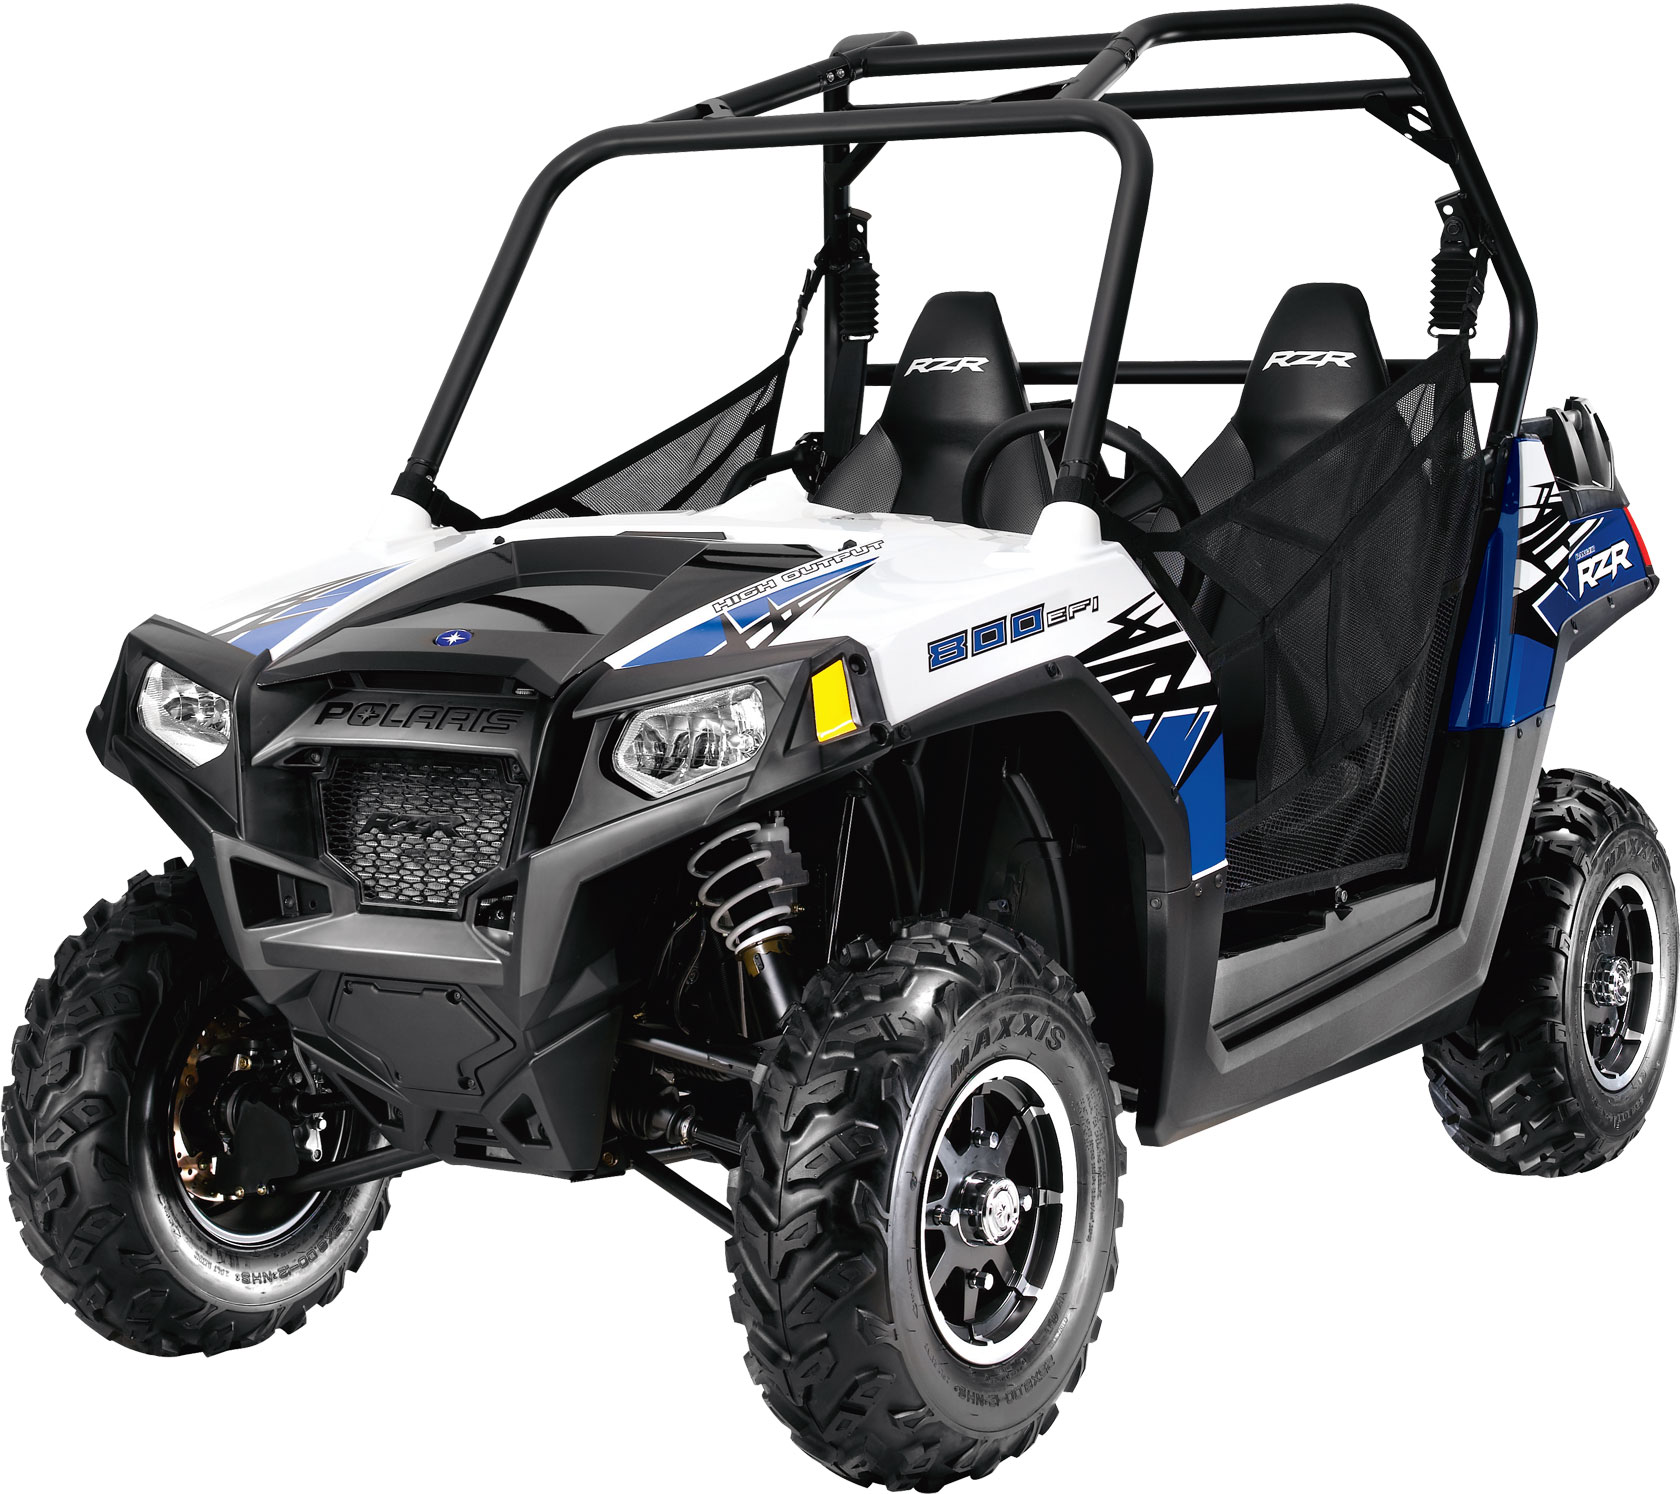 polaris rzr 800 le specs 2010 2011 autoevolution. Black Bedroom Furniture Sets. Home Design Ideas